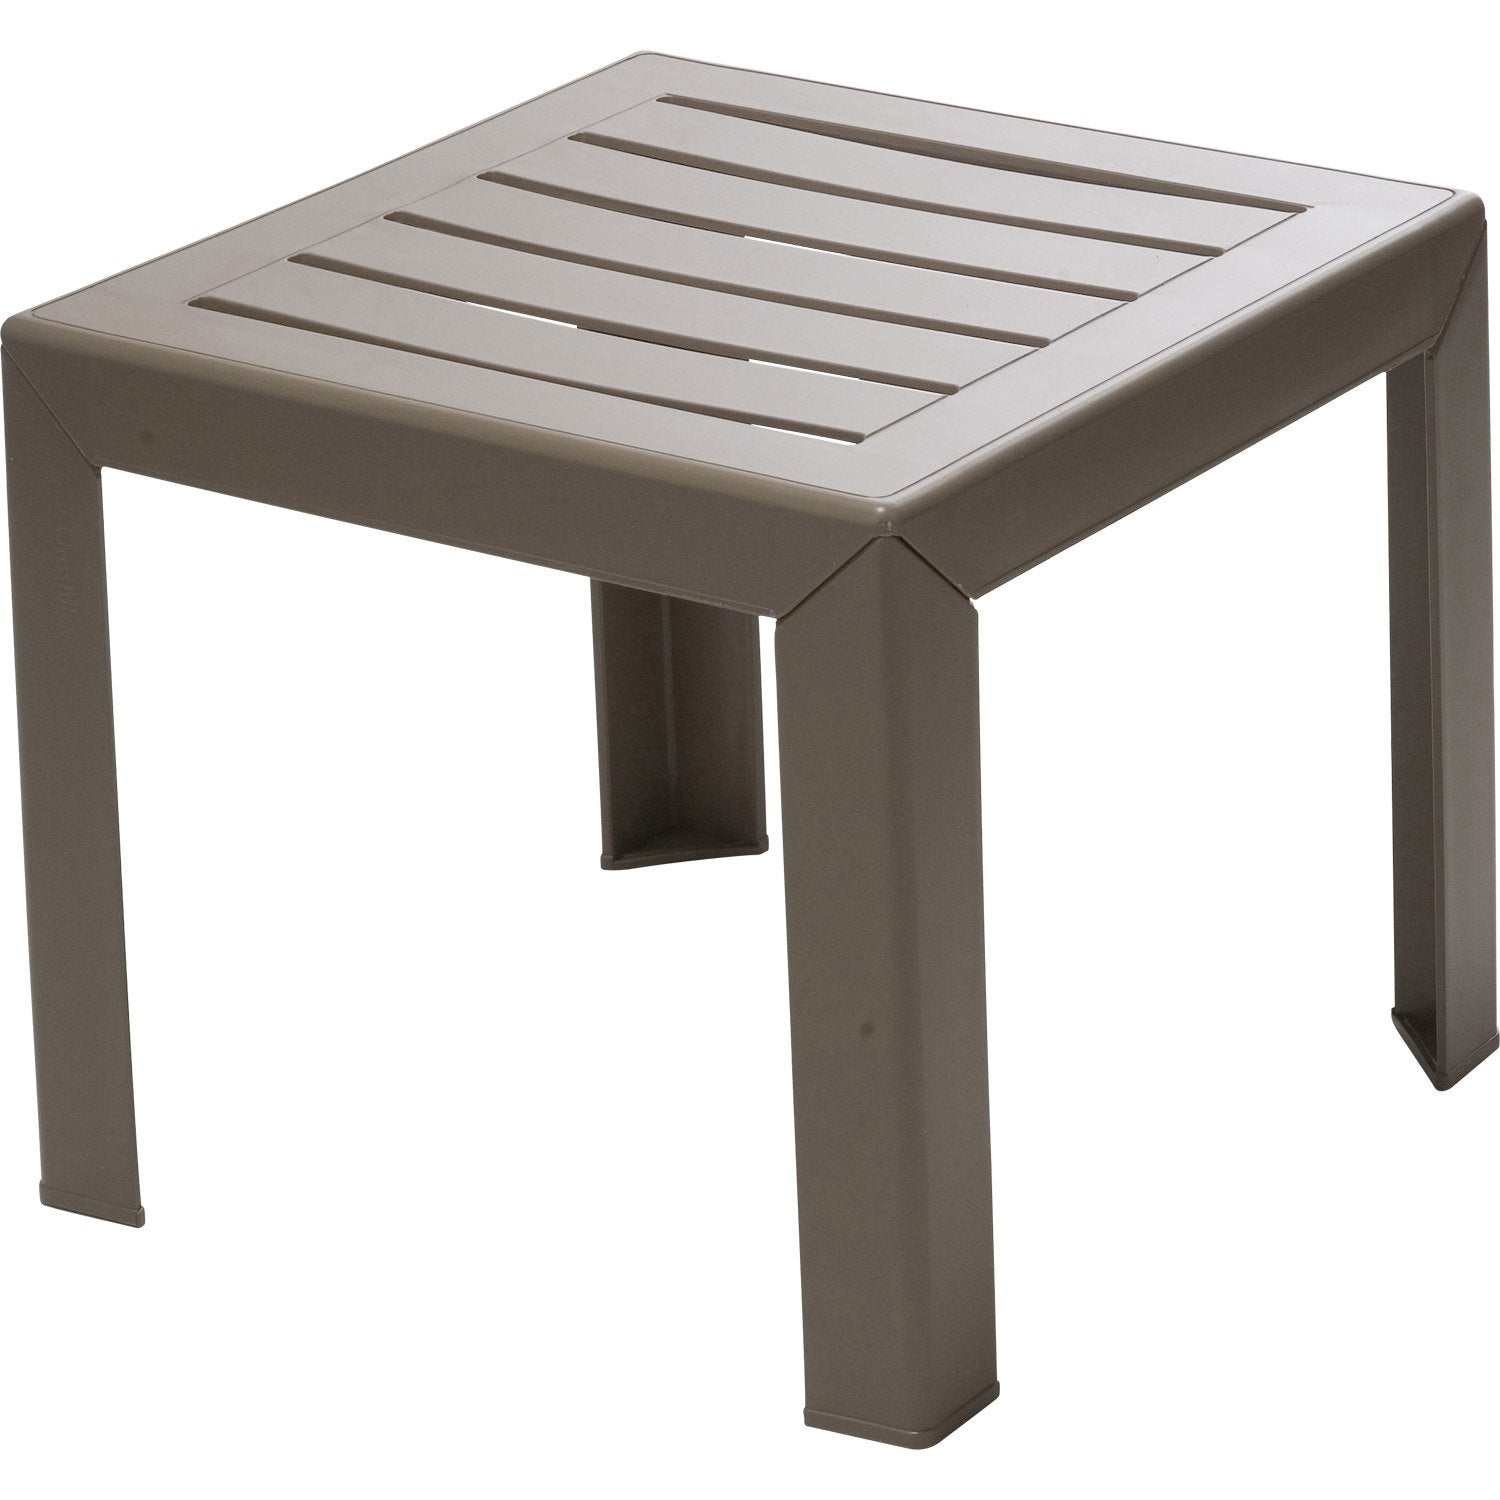 Table basse GROSFILLEX Miami carrée taupe 2 personnes ...